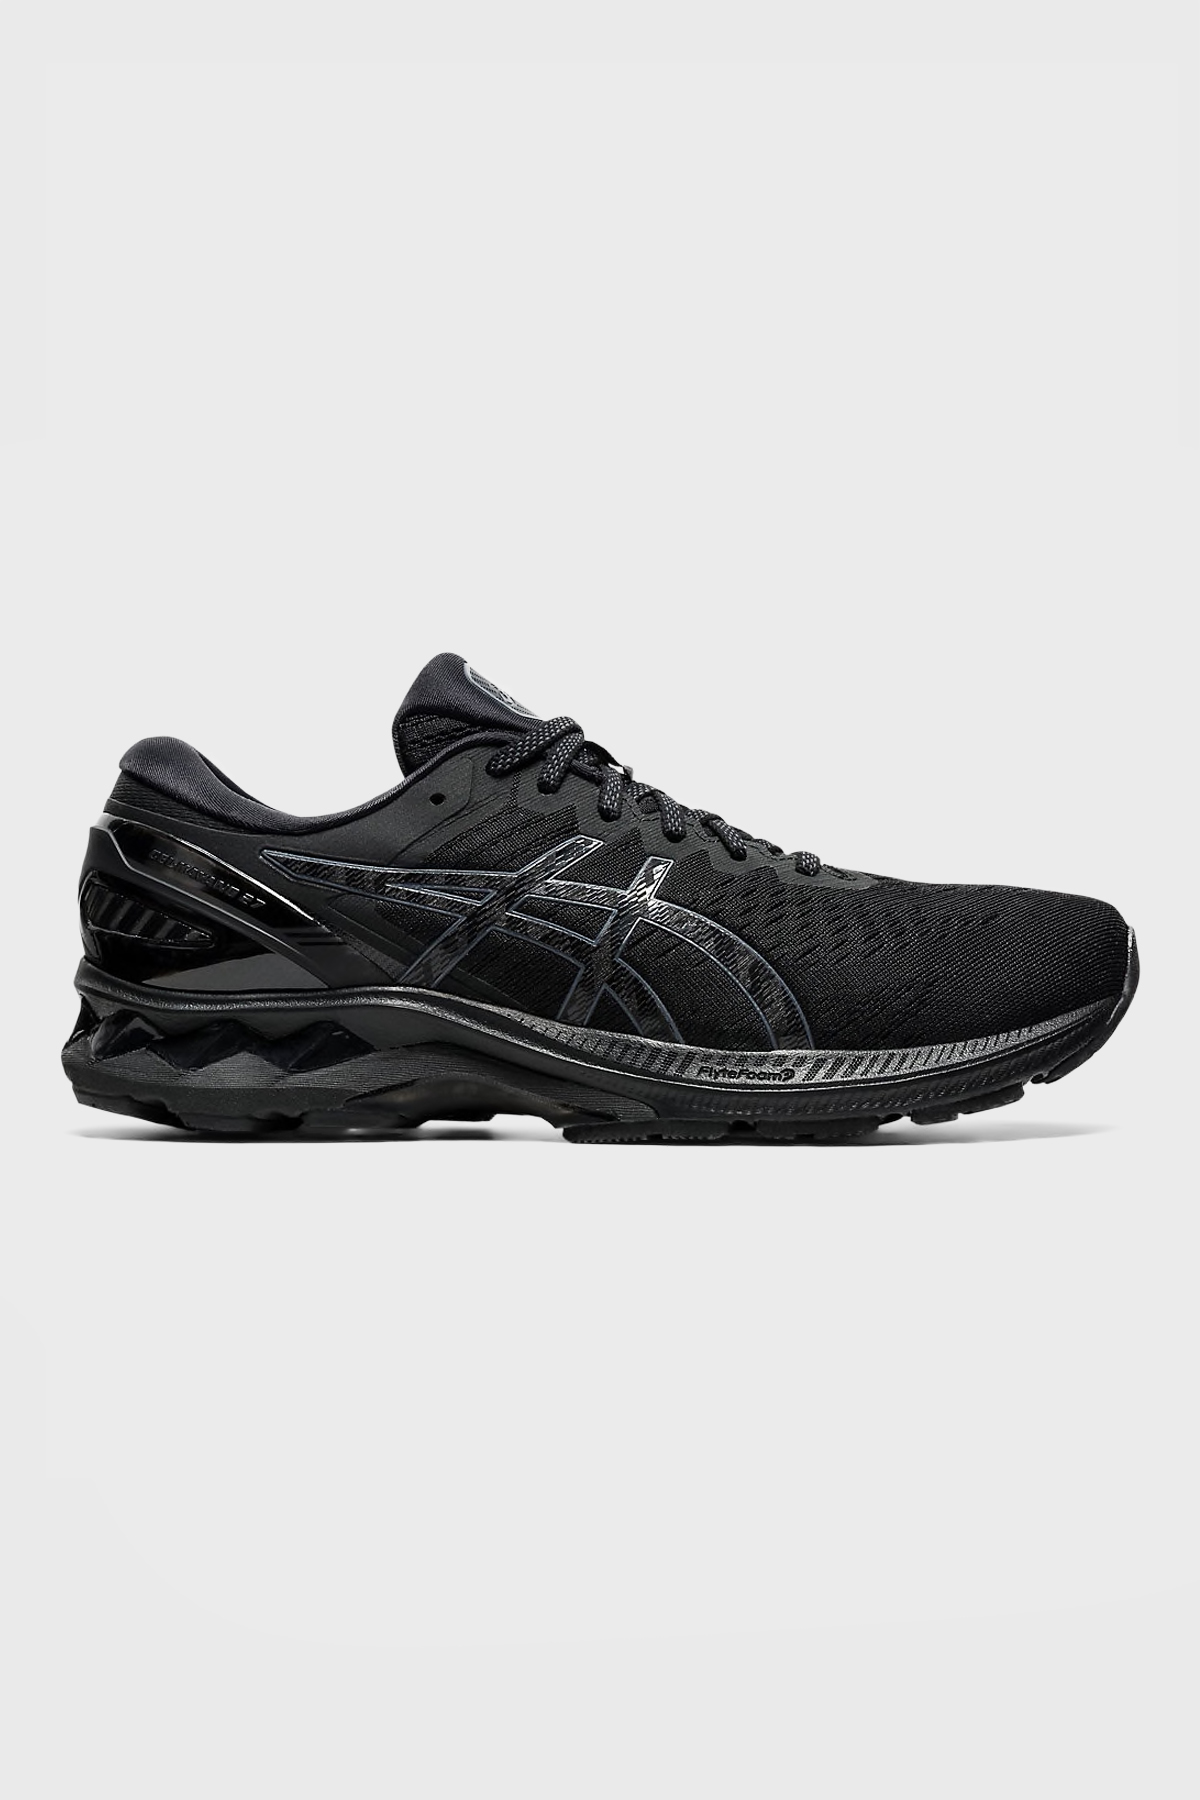 Asics - Gel Kayano 27 - Black